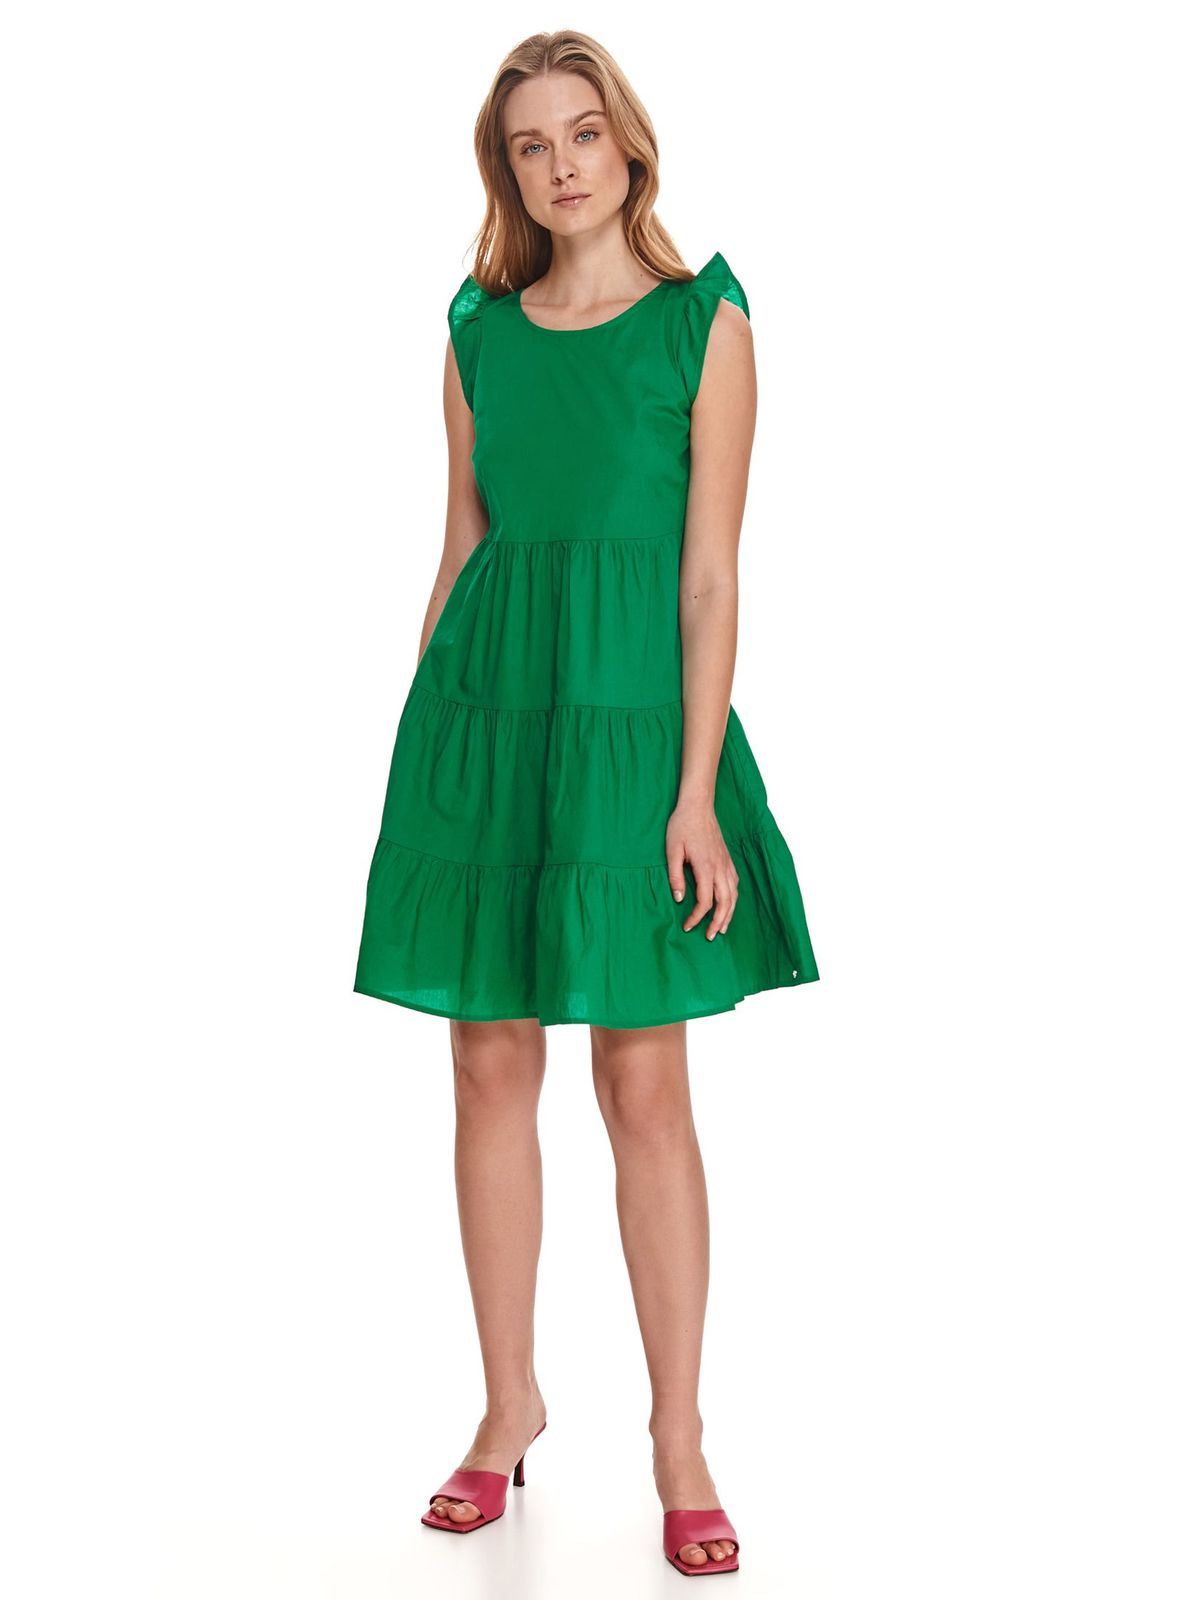 Green dress cotton with ruffle details loose fit